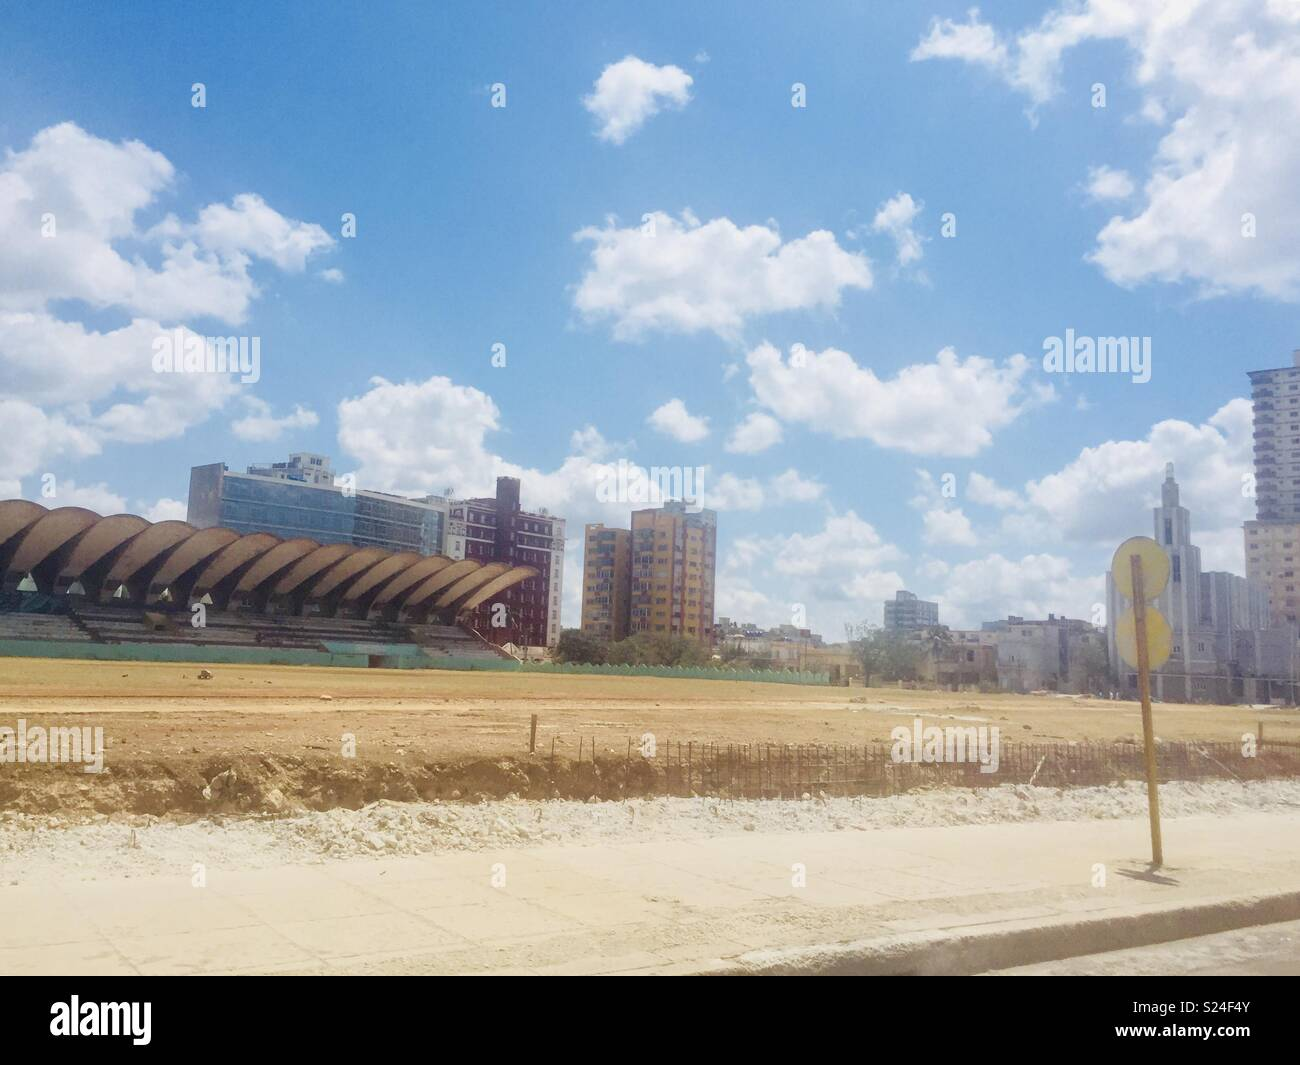 Football pitch in Havana - Stock Image